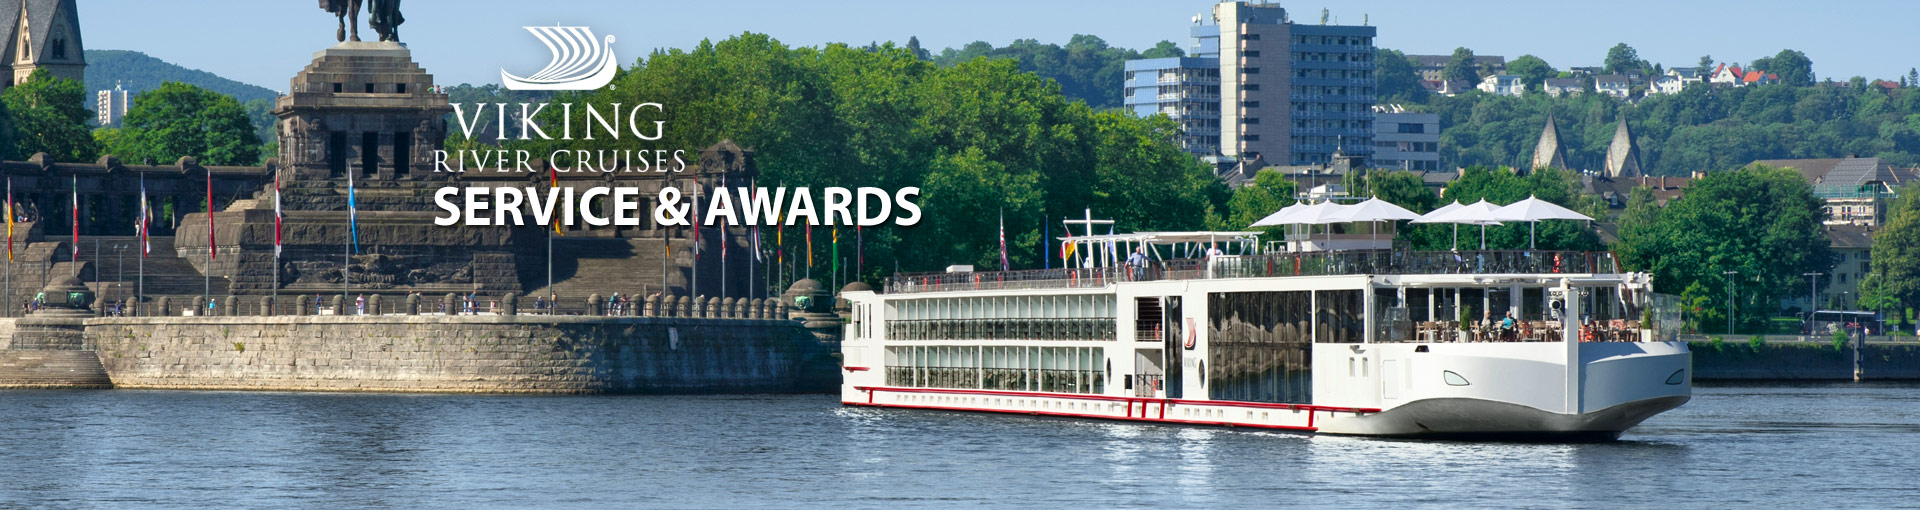 Viking River Cruises Service & Awards